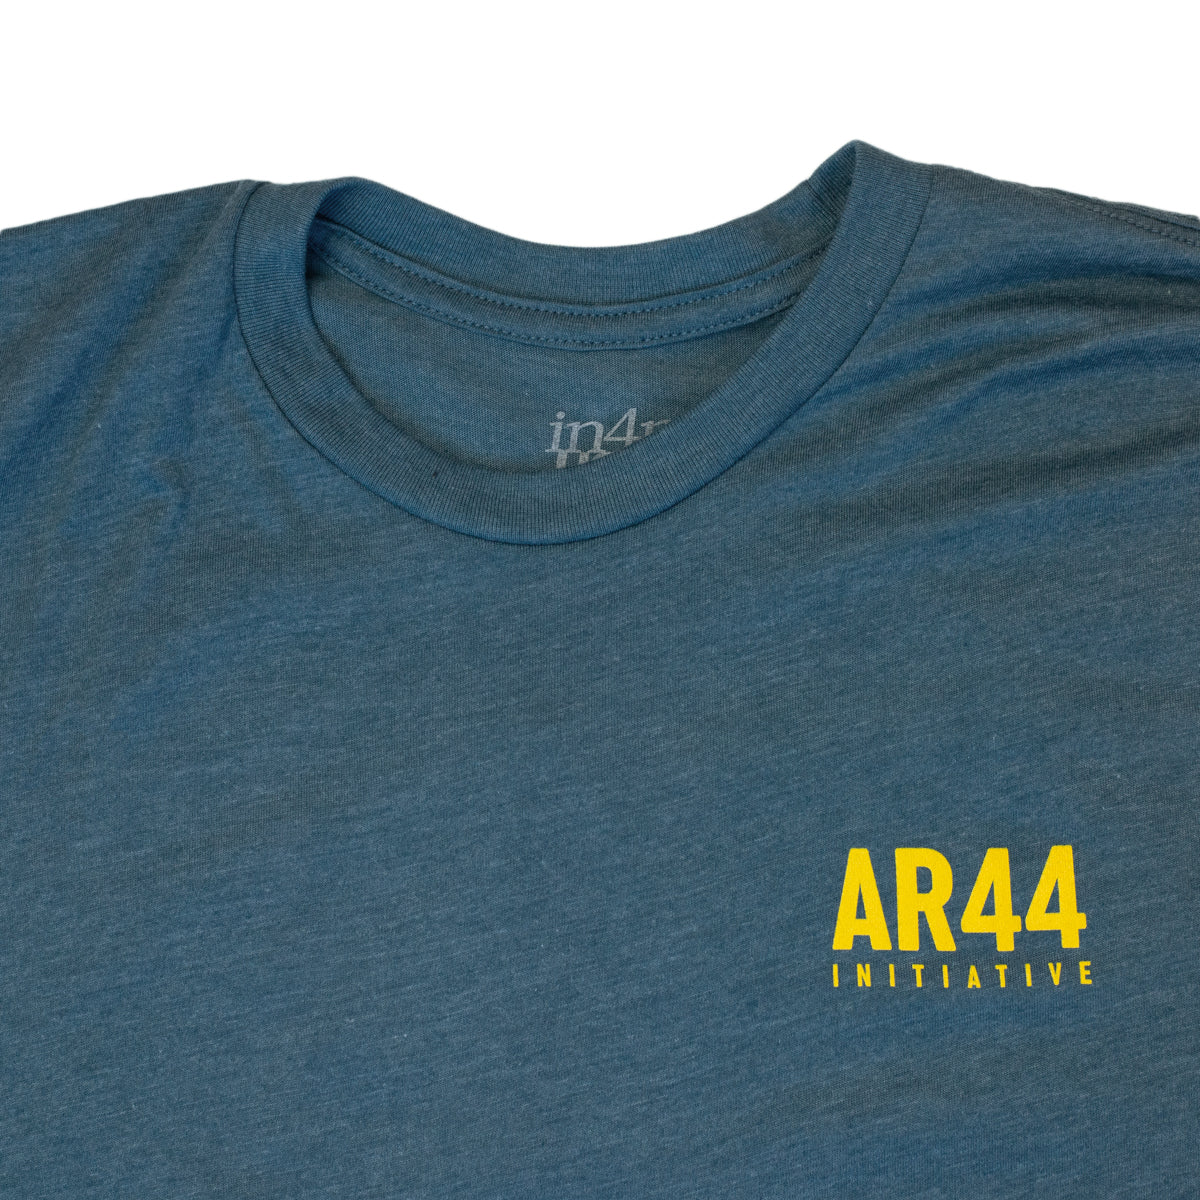 AR44 INITIATIVE -LOTUS SKULL (HEATHER NAVY)